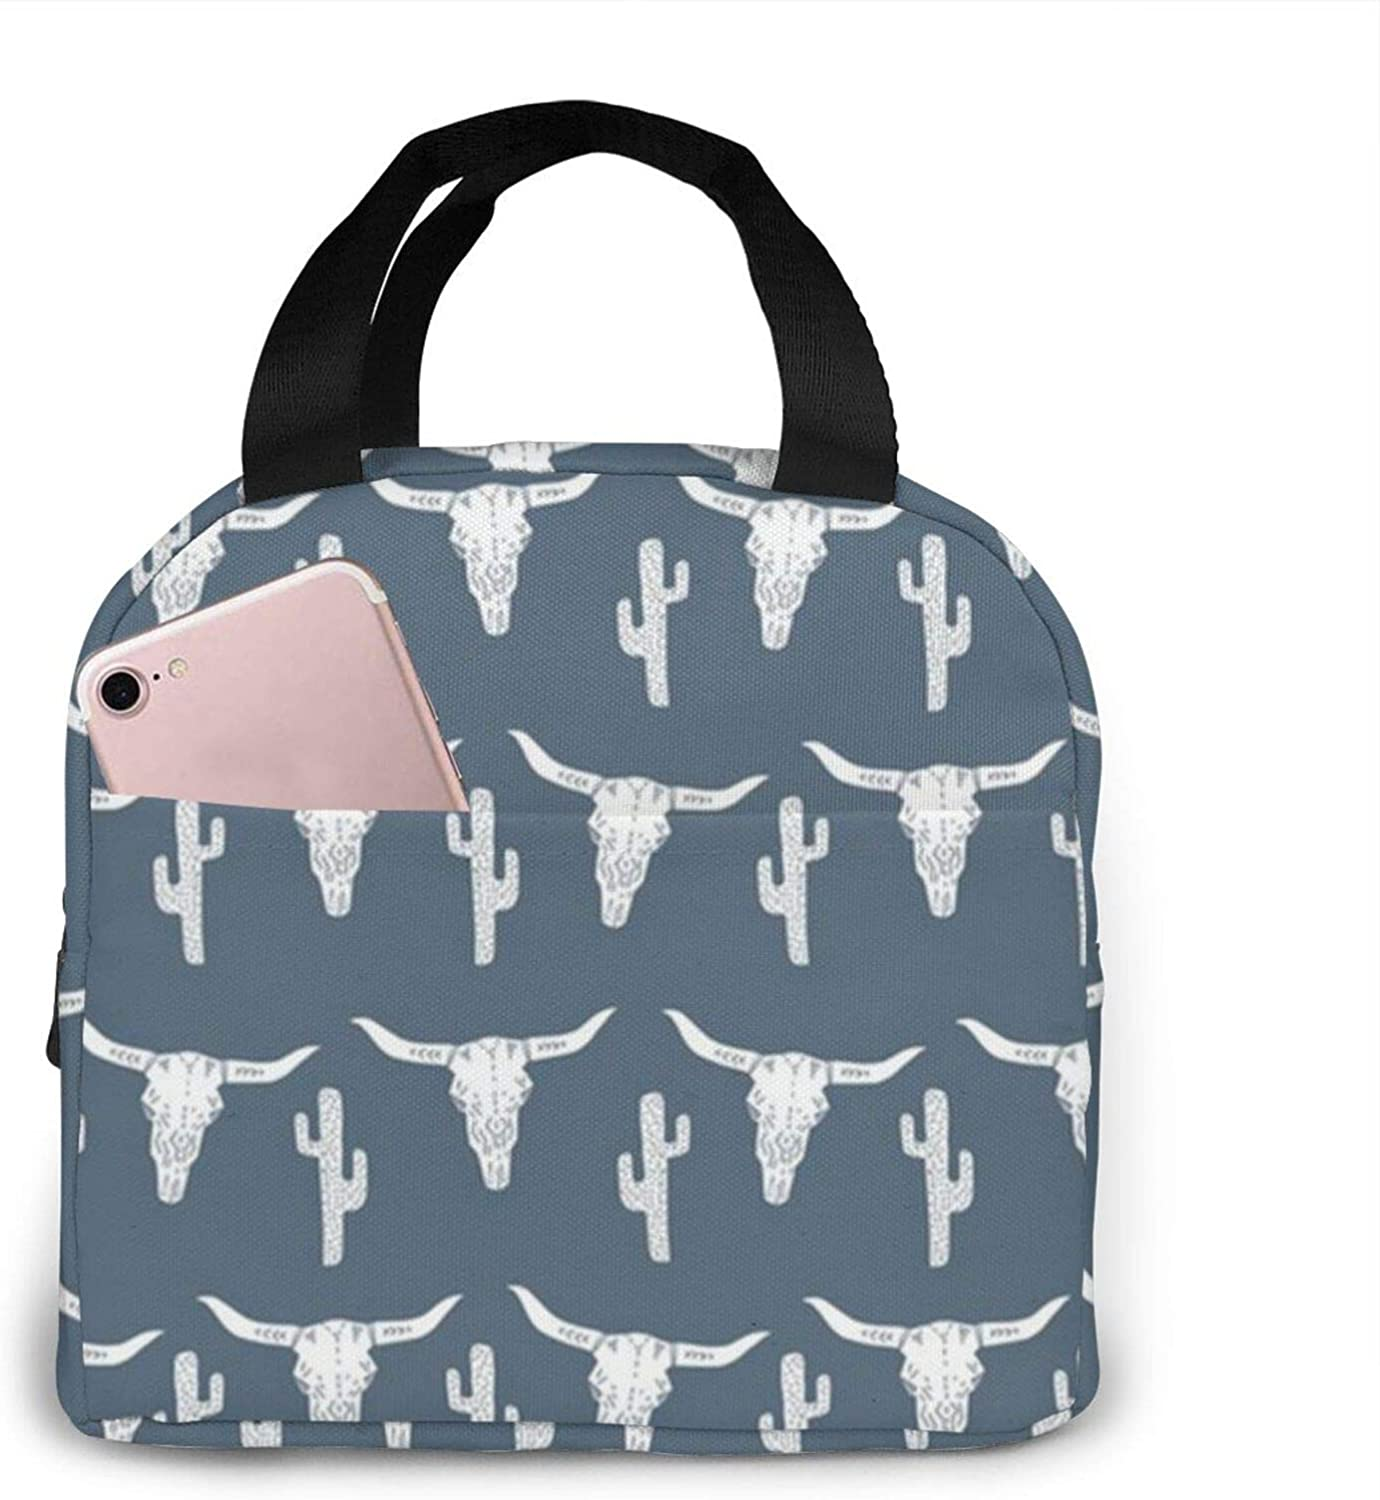 tianls Longhorn Skull Skull Cactus Blue Lunch Bag Tote Bag Lunch Bag for Women/Men Lunch Box Insulated Lunch Container